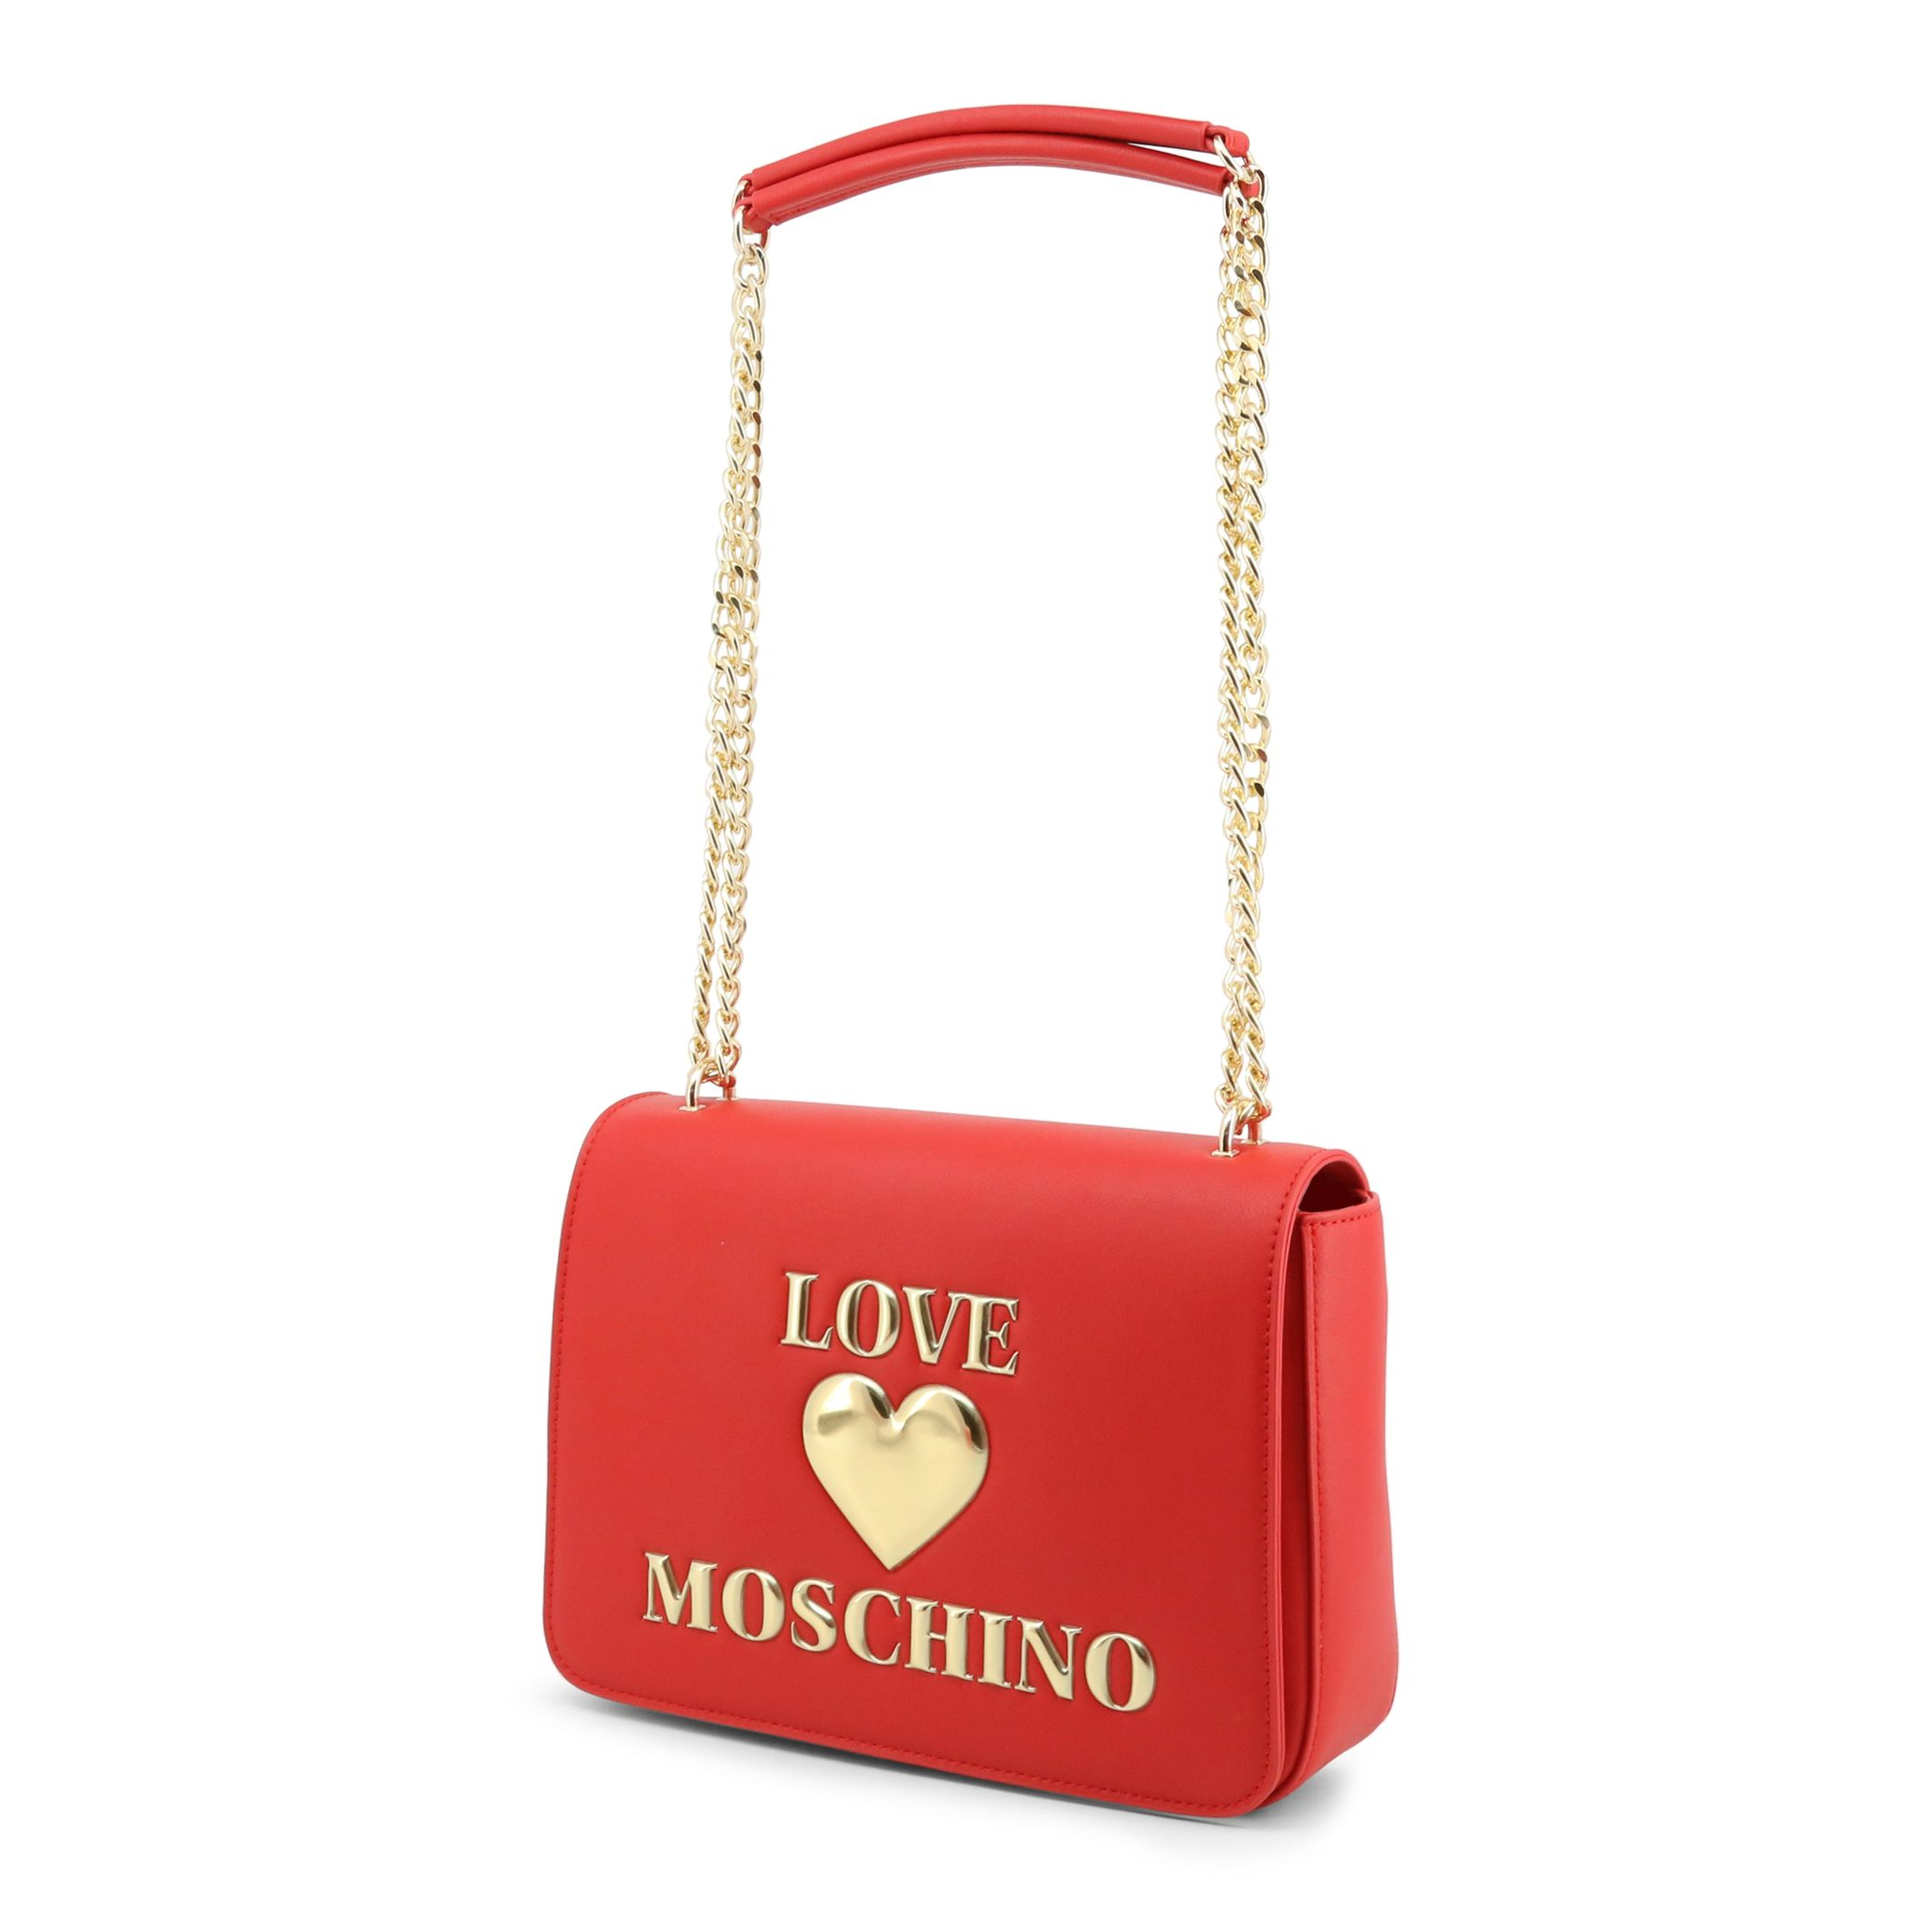 204F2De0 0720 11Eb Aefc Ef5B88Bcd865 Love Moschino - Jc4035Pp1Ble - Red